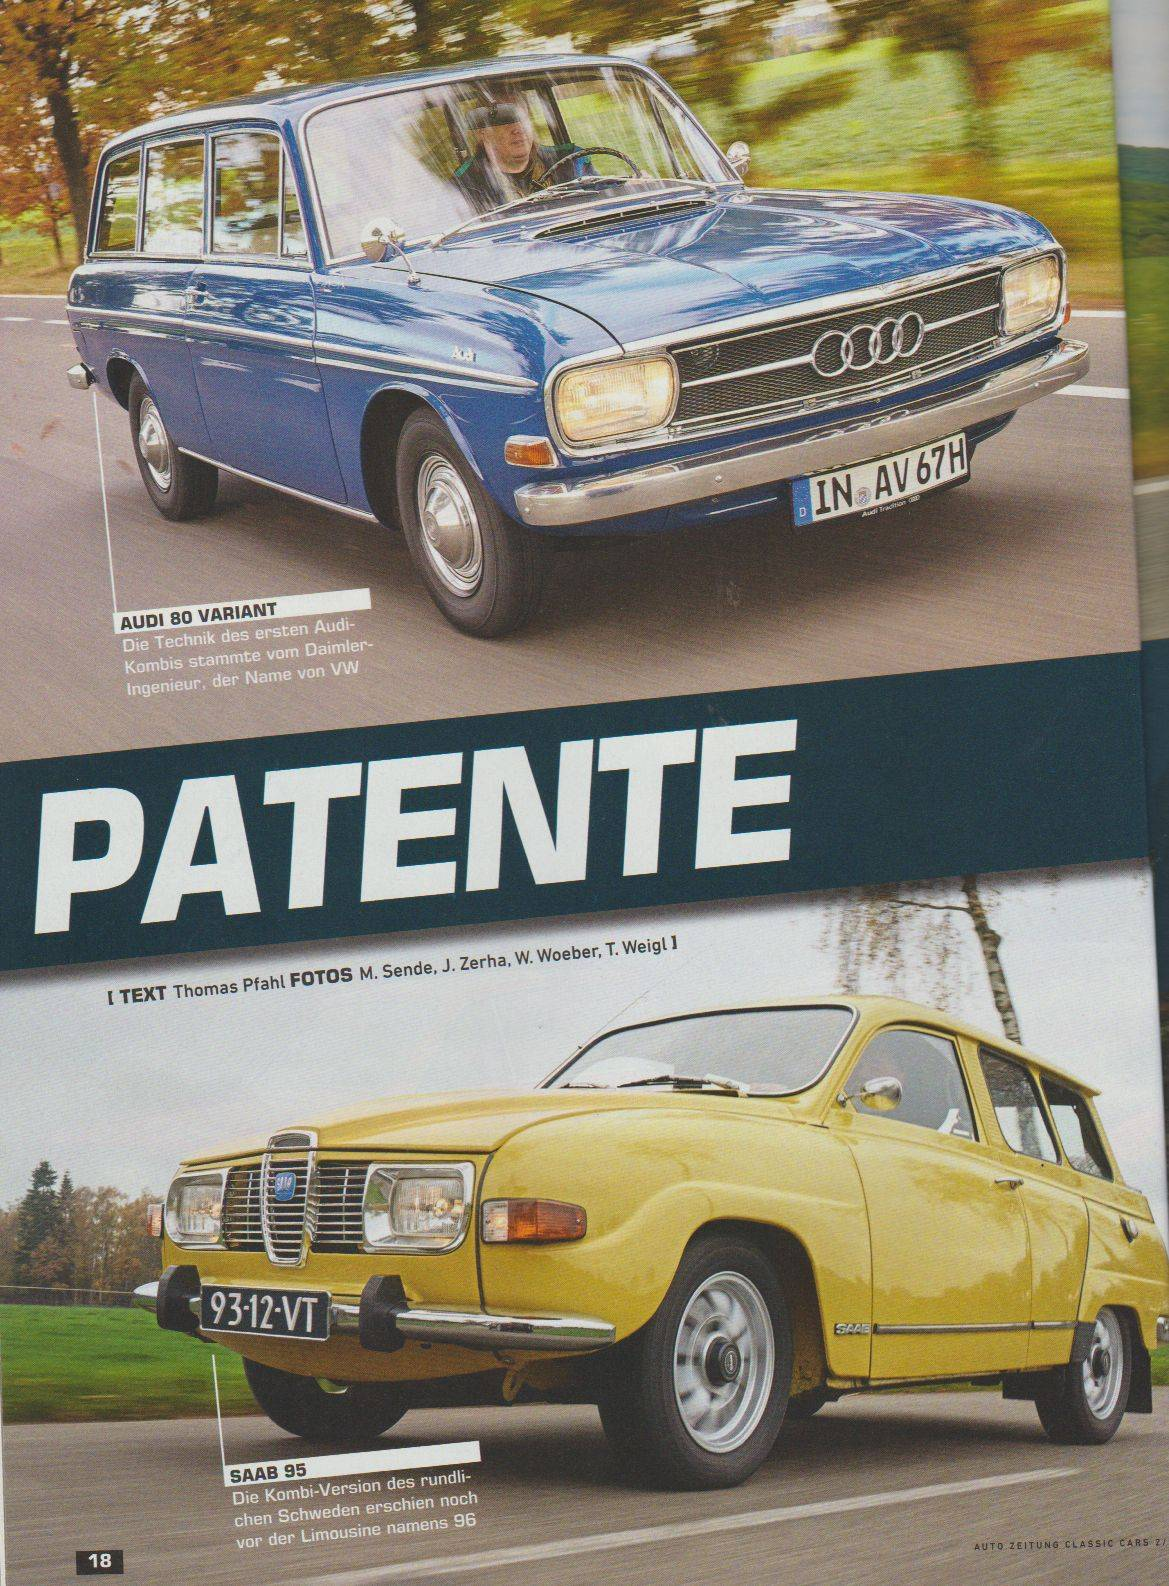 Patente Packesel S. 18